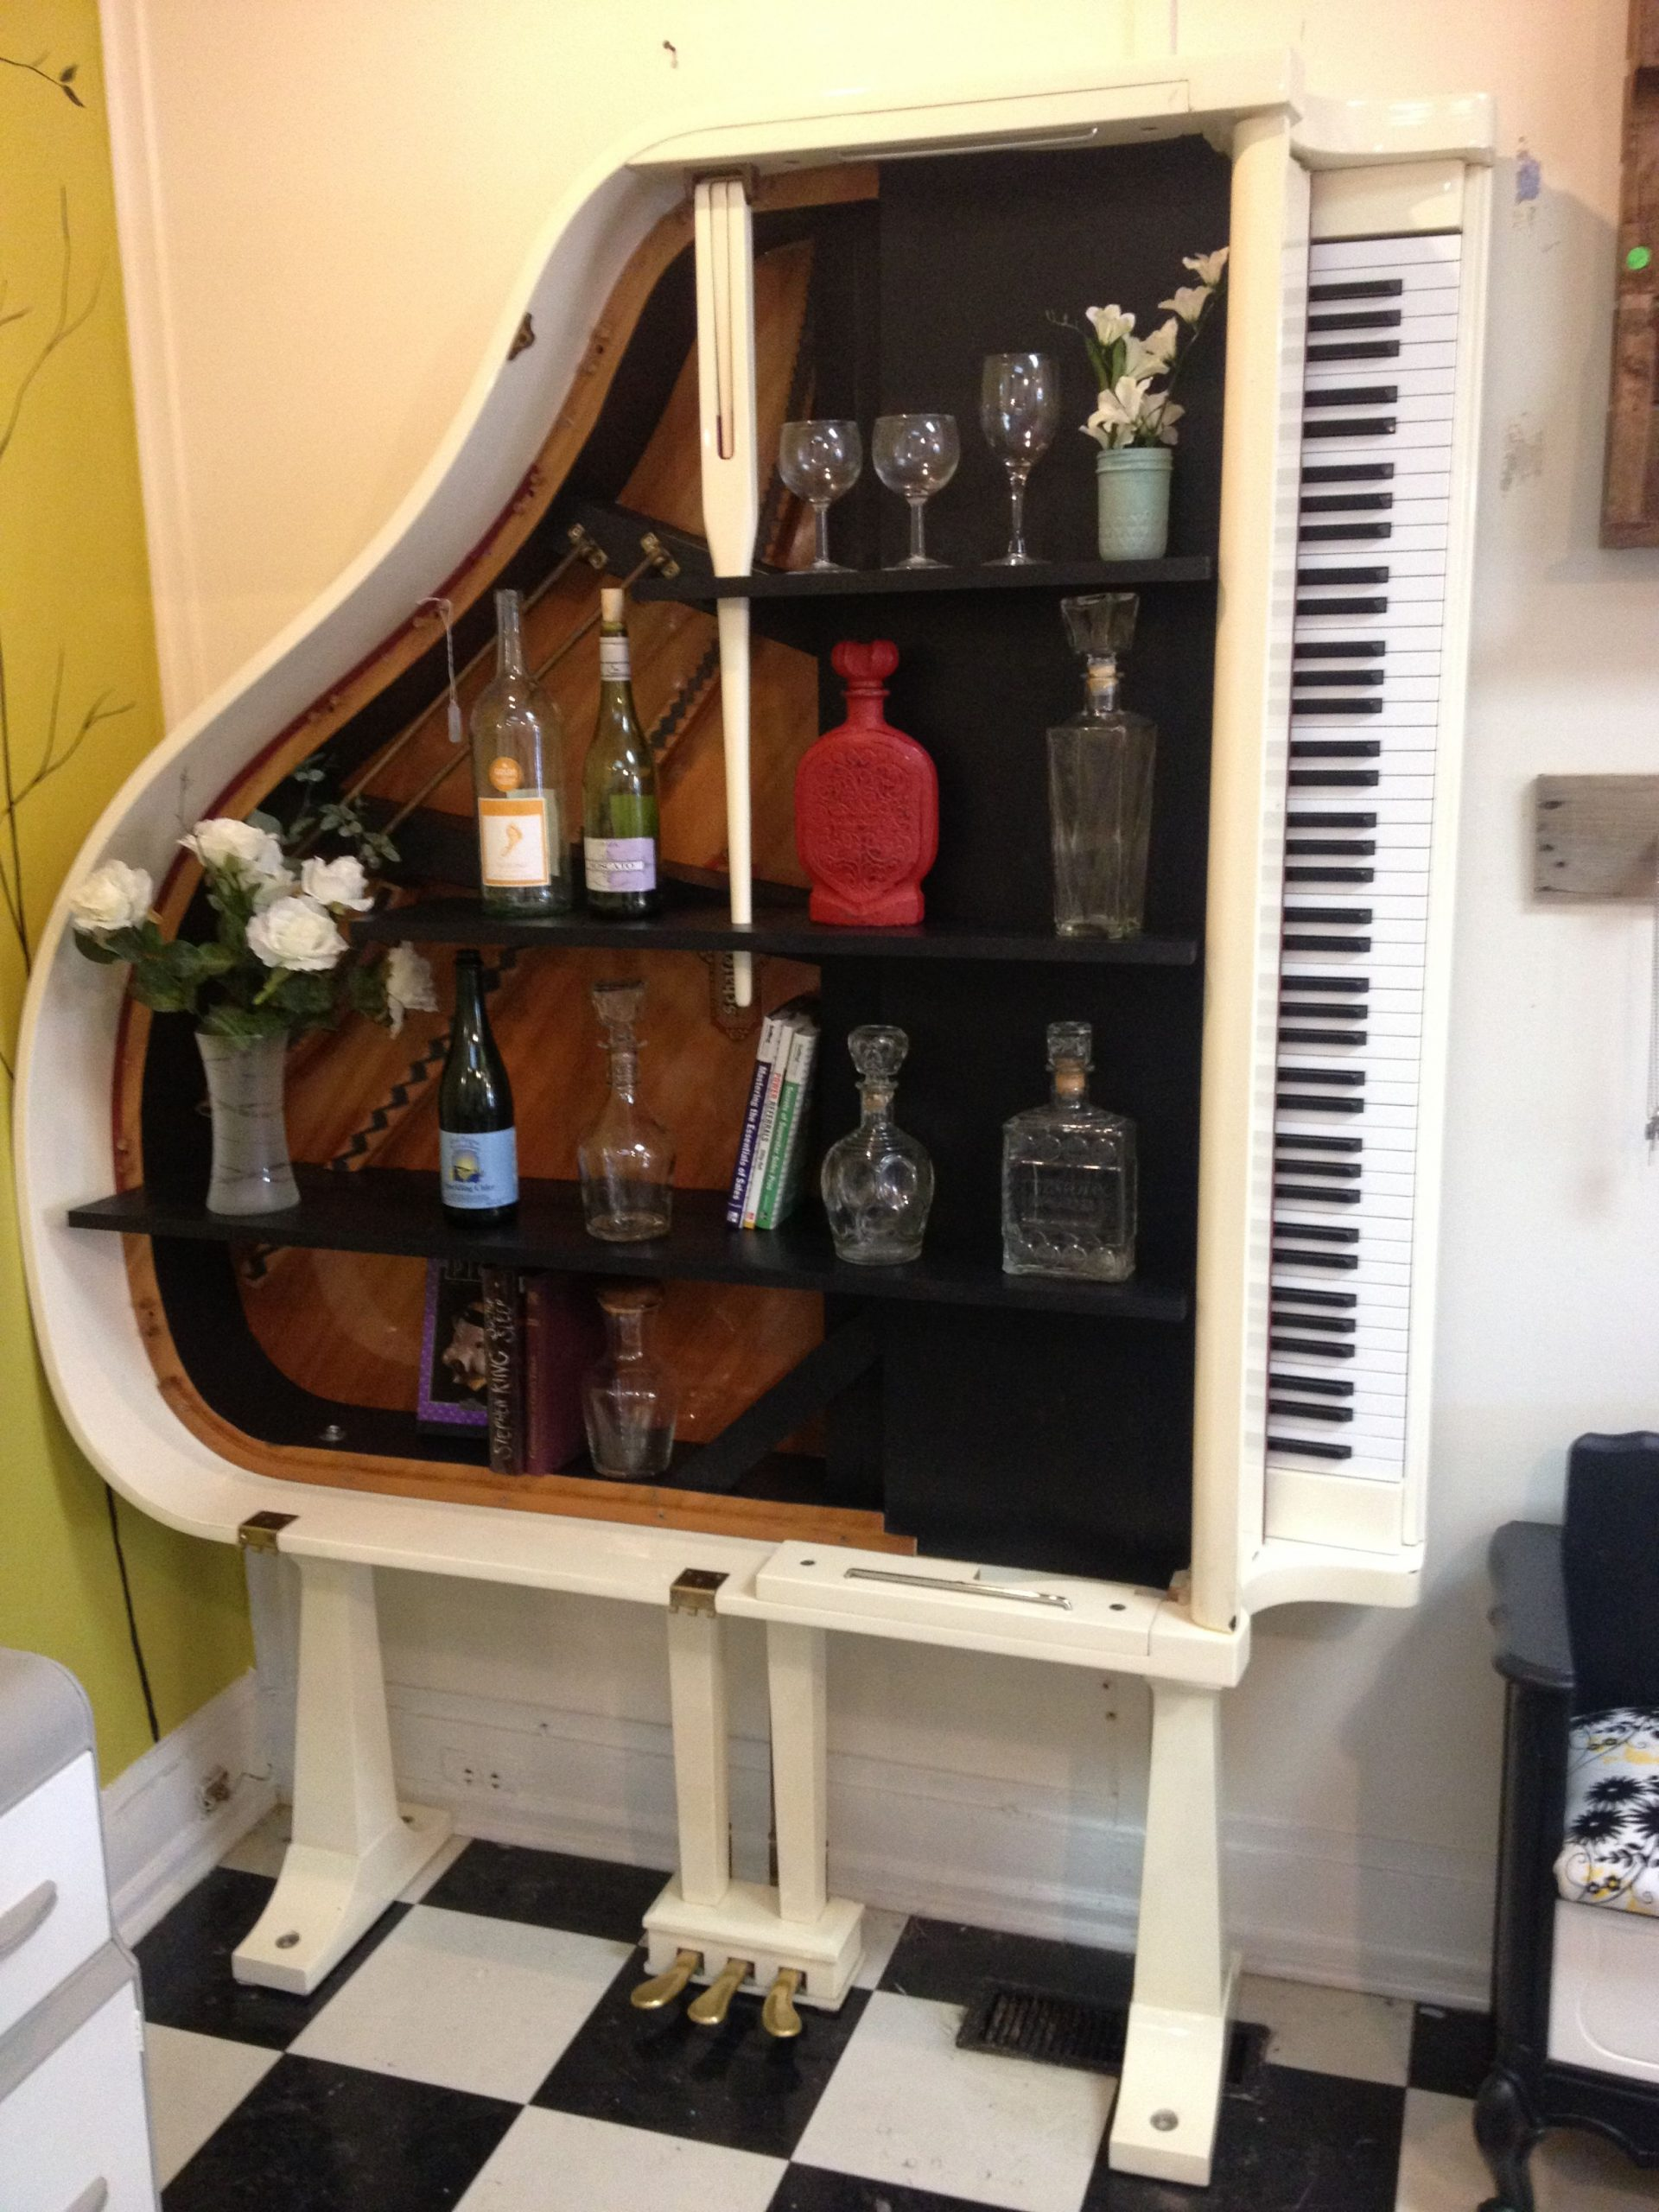 Park Art|My WordPress Blog_How To Move A Baby Grand Piano Into Another Room